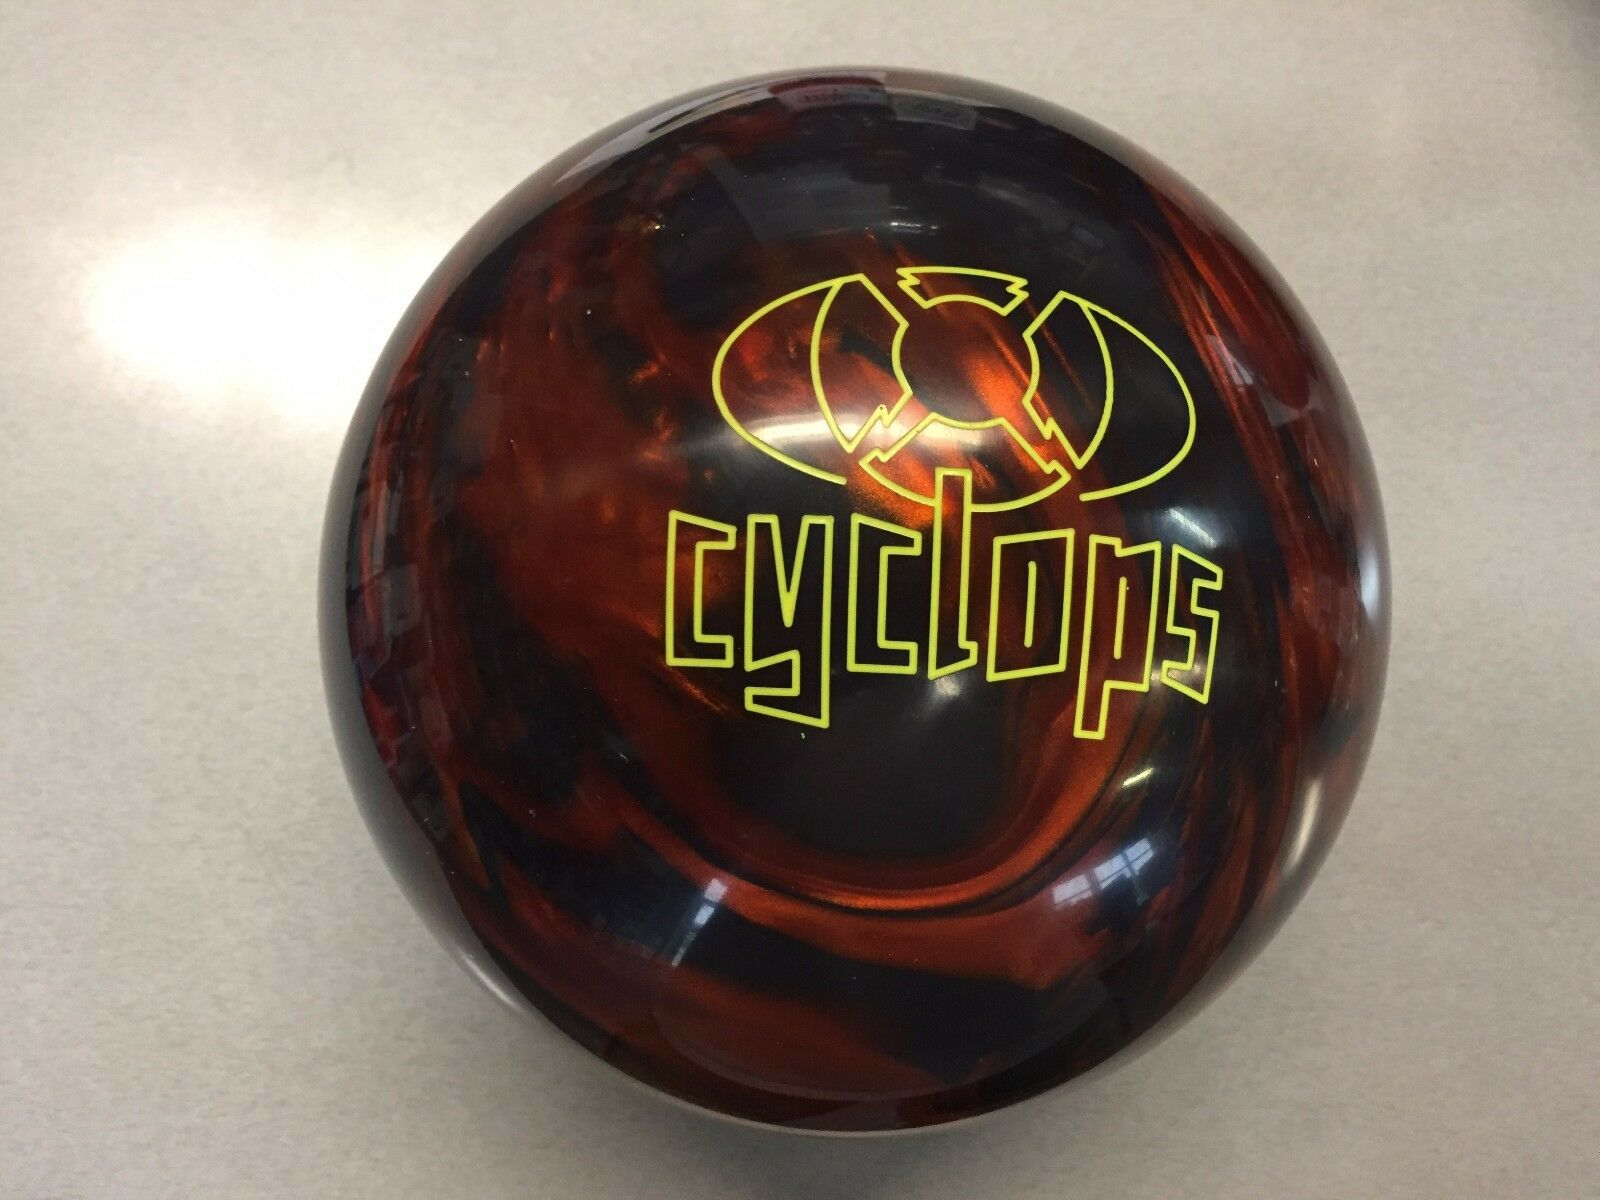 Radical Cyclops  bowling ball  16 LB. NEW IN BOX    1ST QUALITY